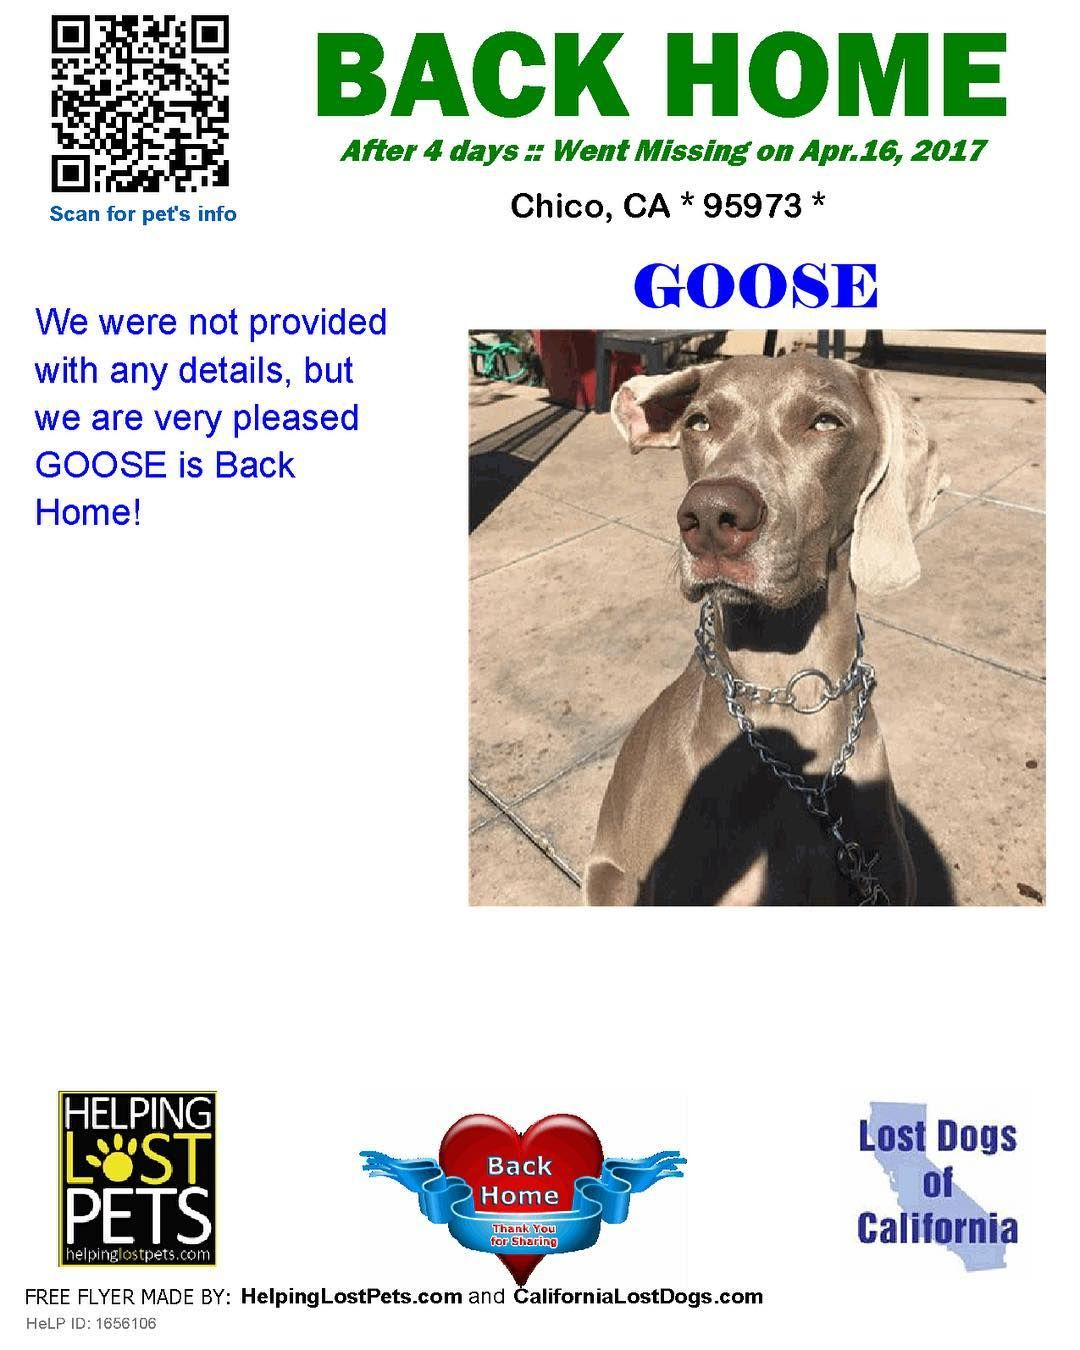 We Are Very Happy To Report Goose Is Back Home After 4 Days Welcome Home Goose Reunited Lostdogsca Helpinglostpets Help Id Losing A Dog Losing A Pet Dogs